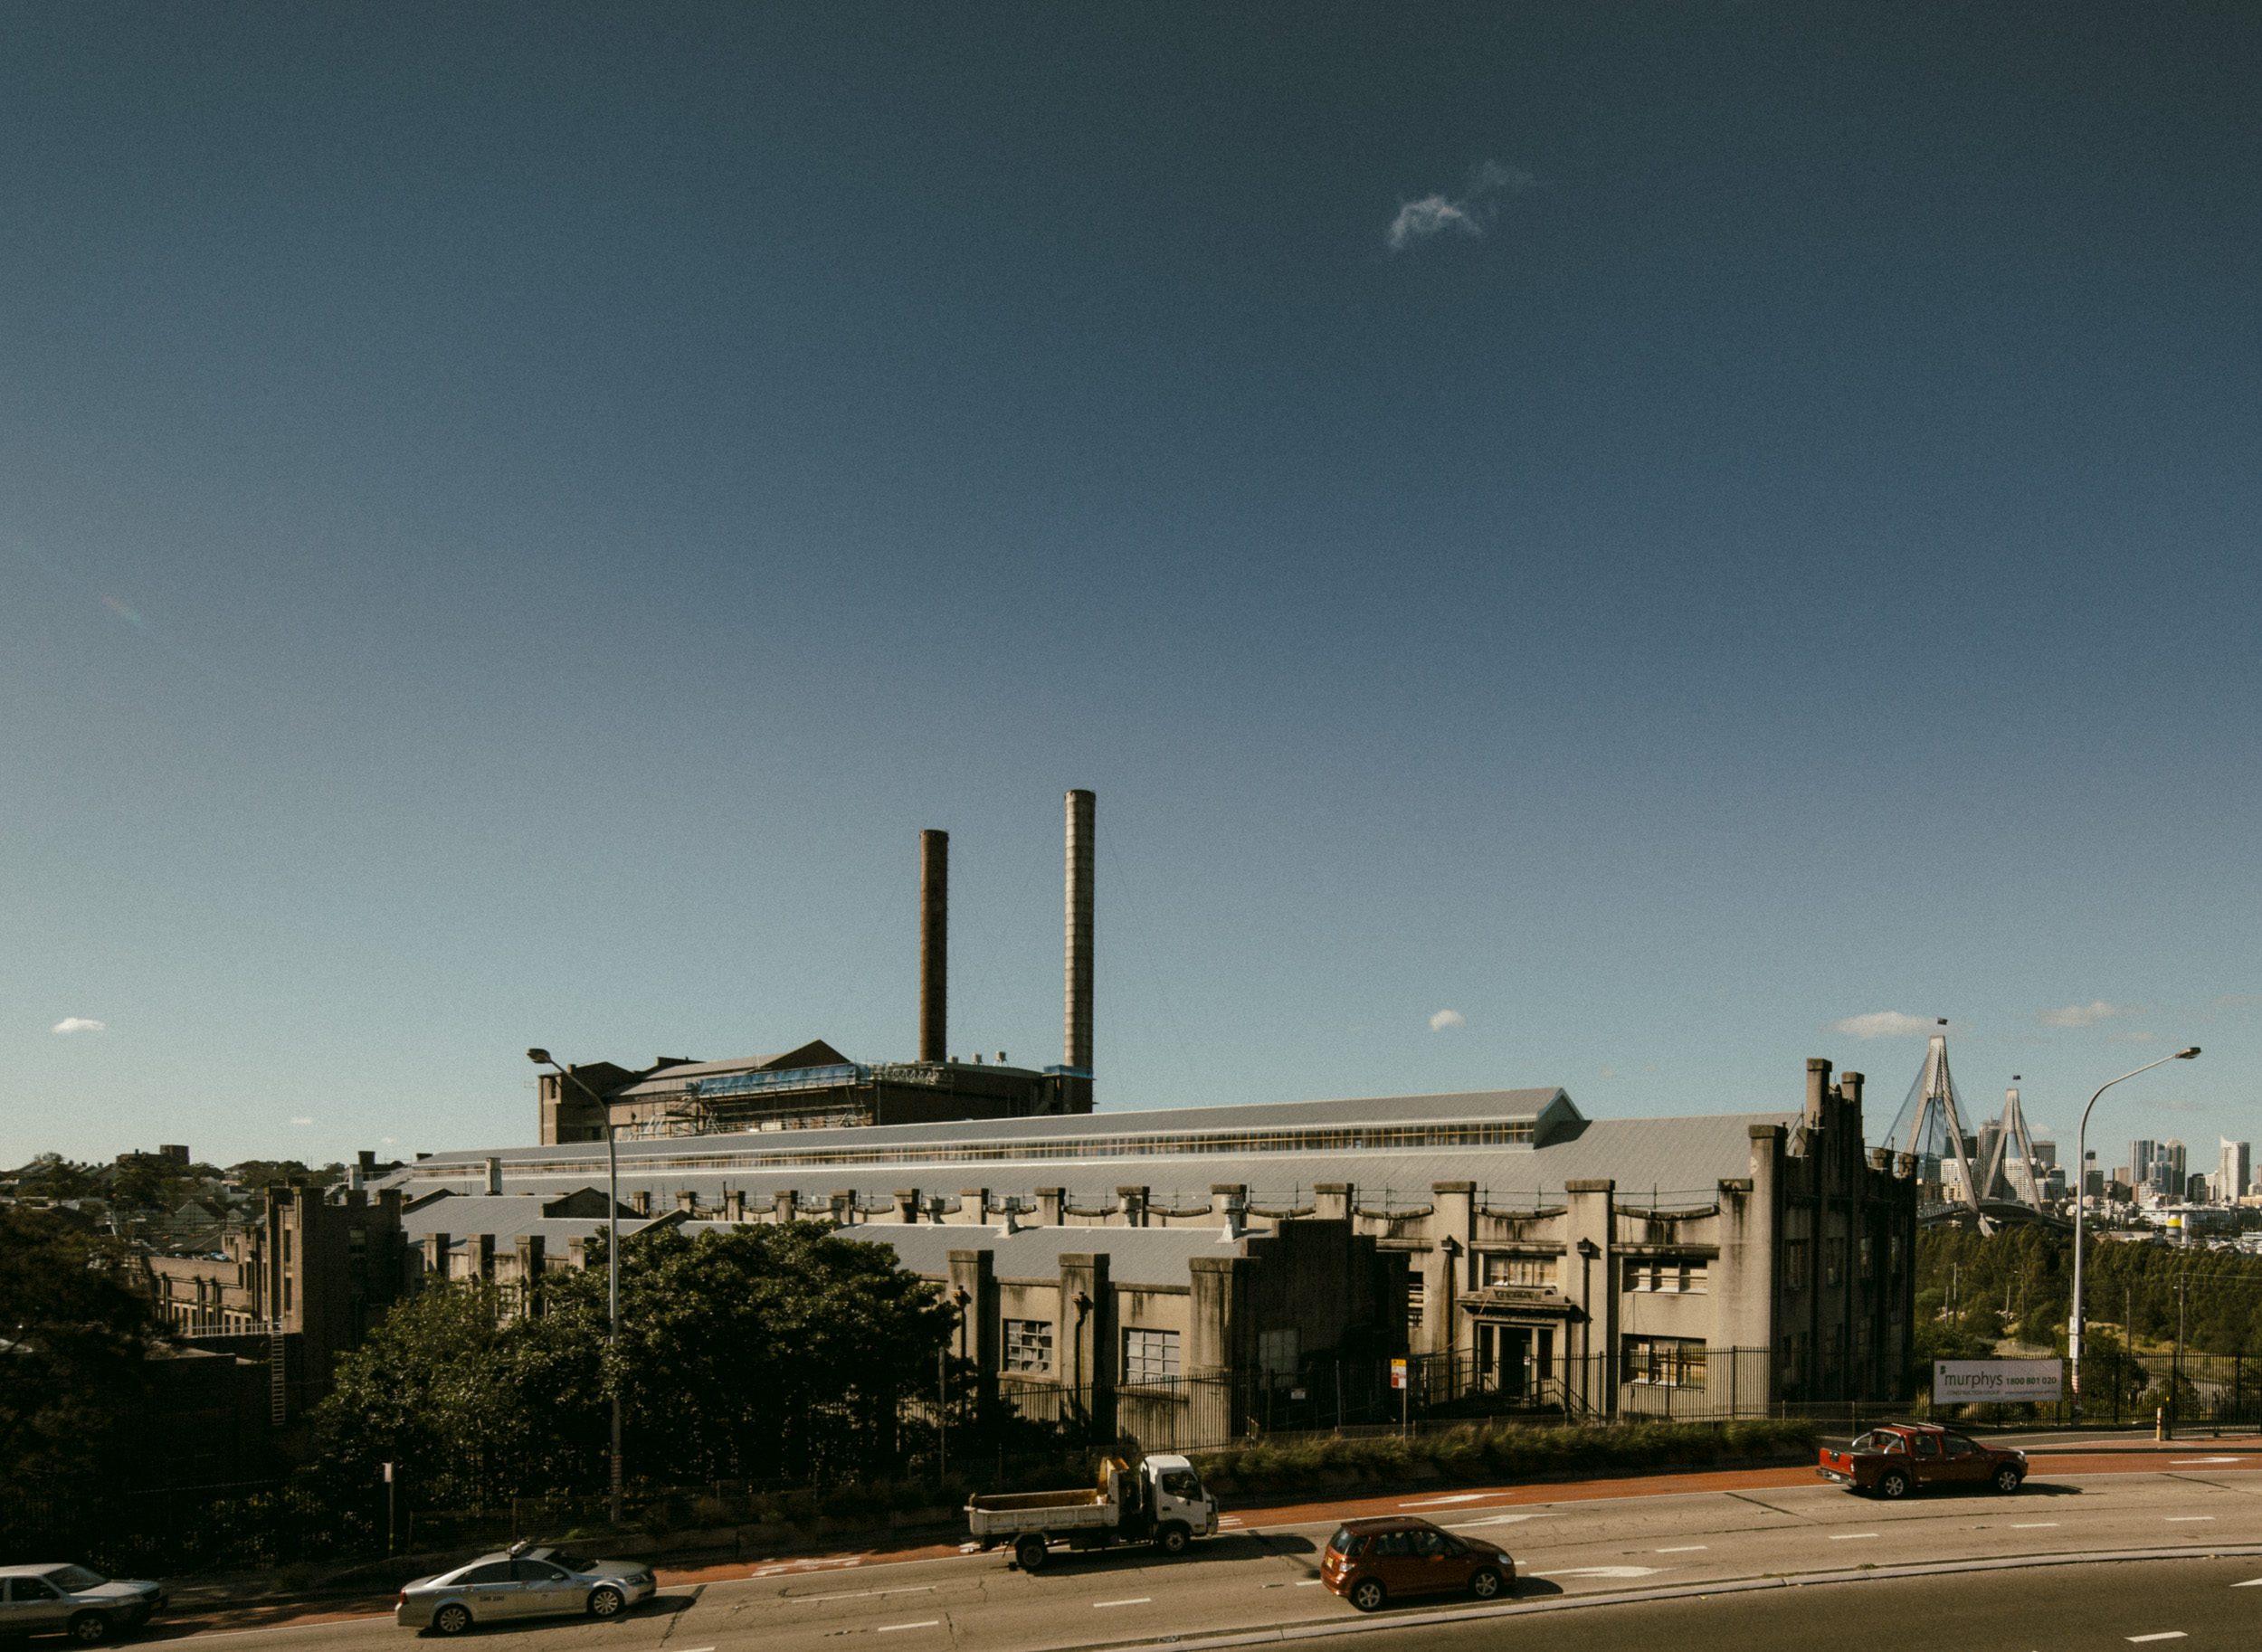 mackintosh_photography_industrial_architecture_11.jpg